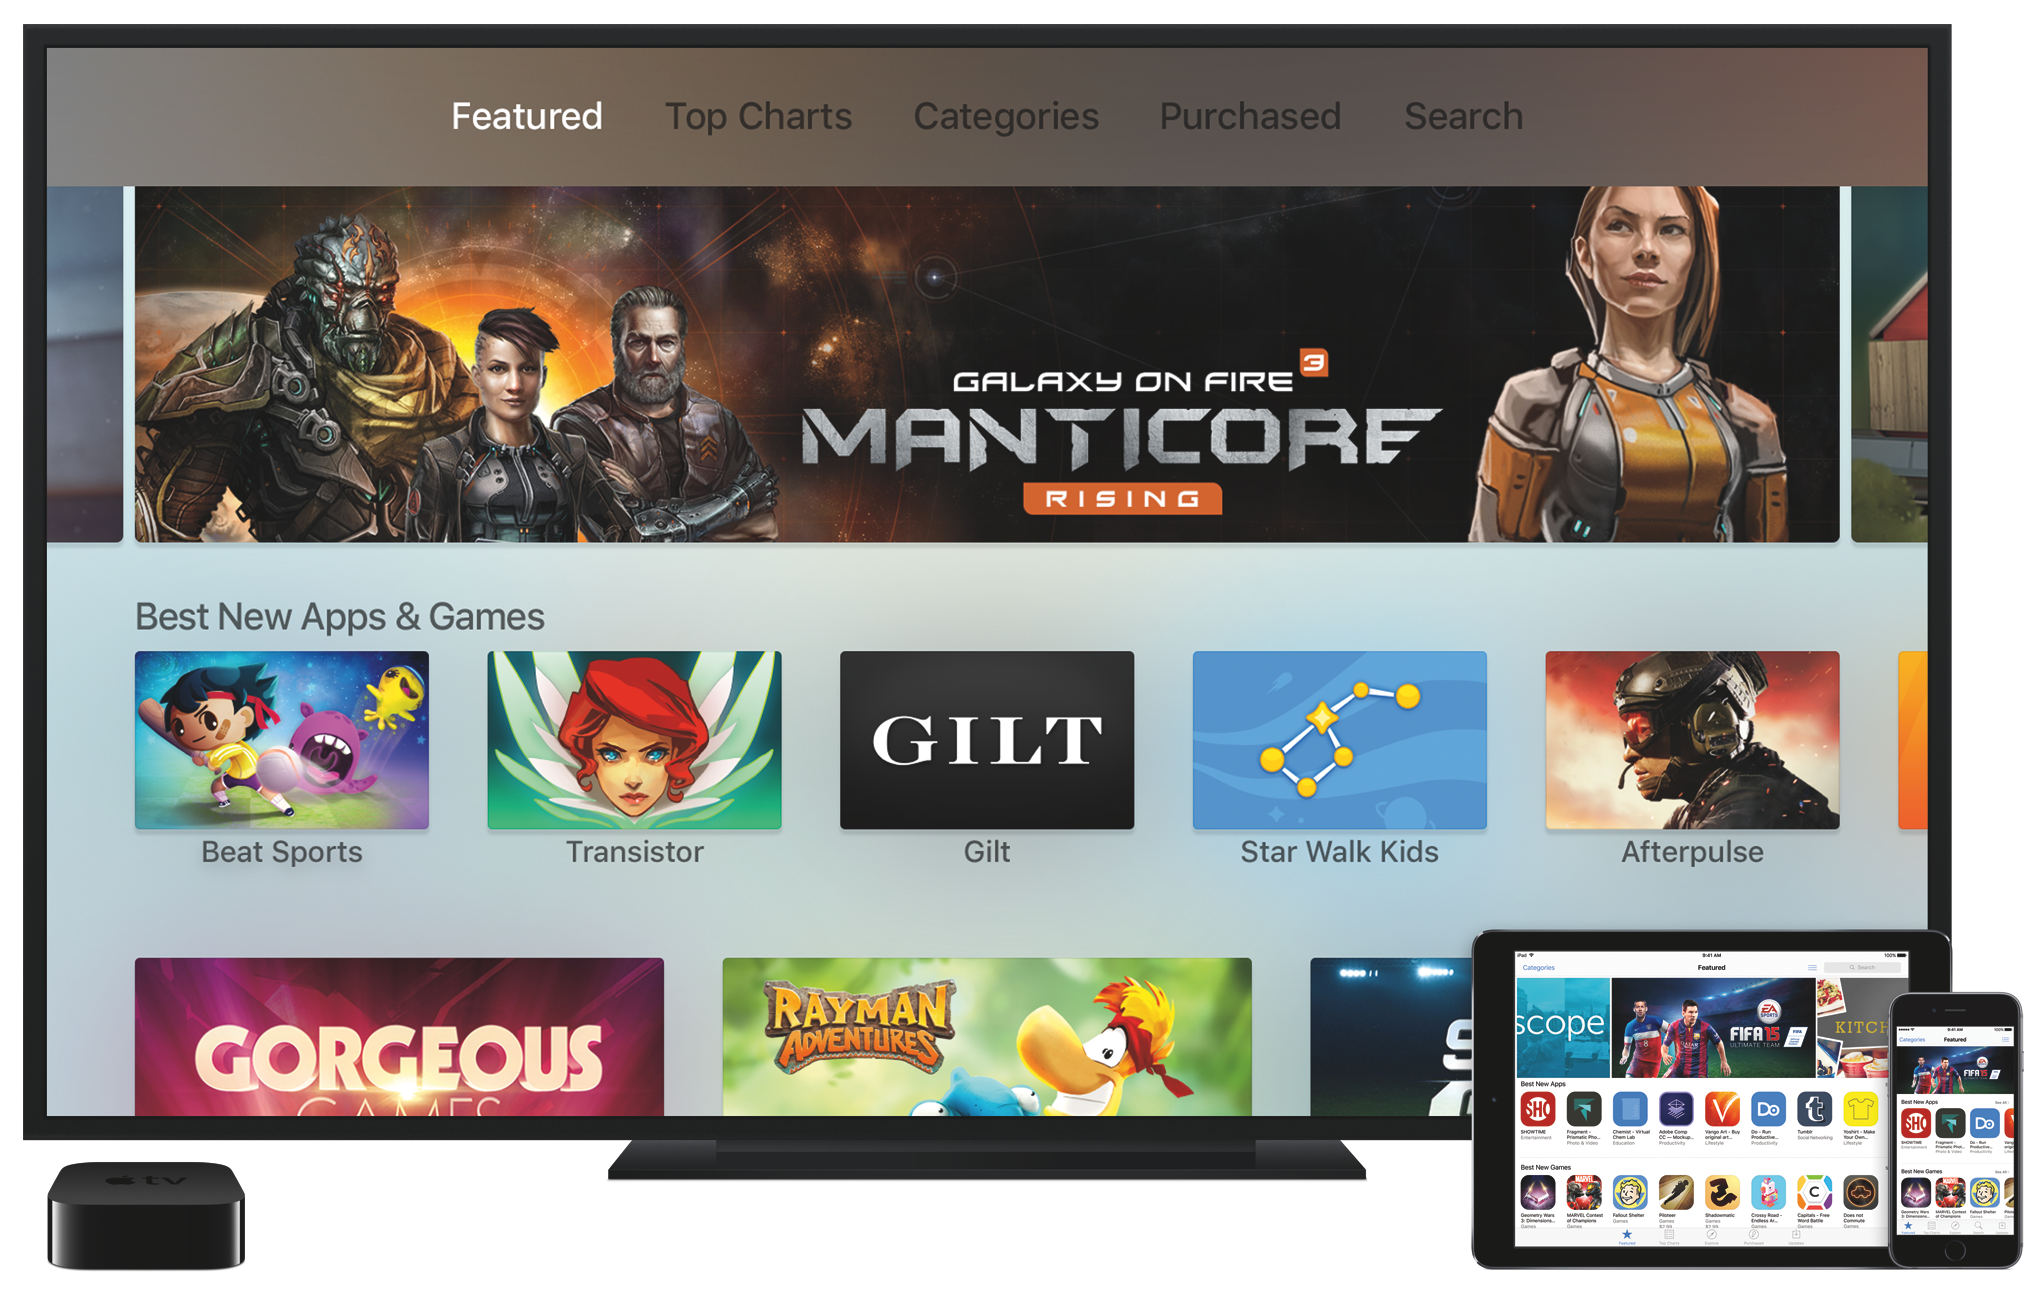 Apple now ranks the top Apple TV apps